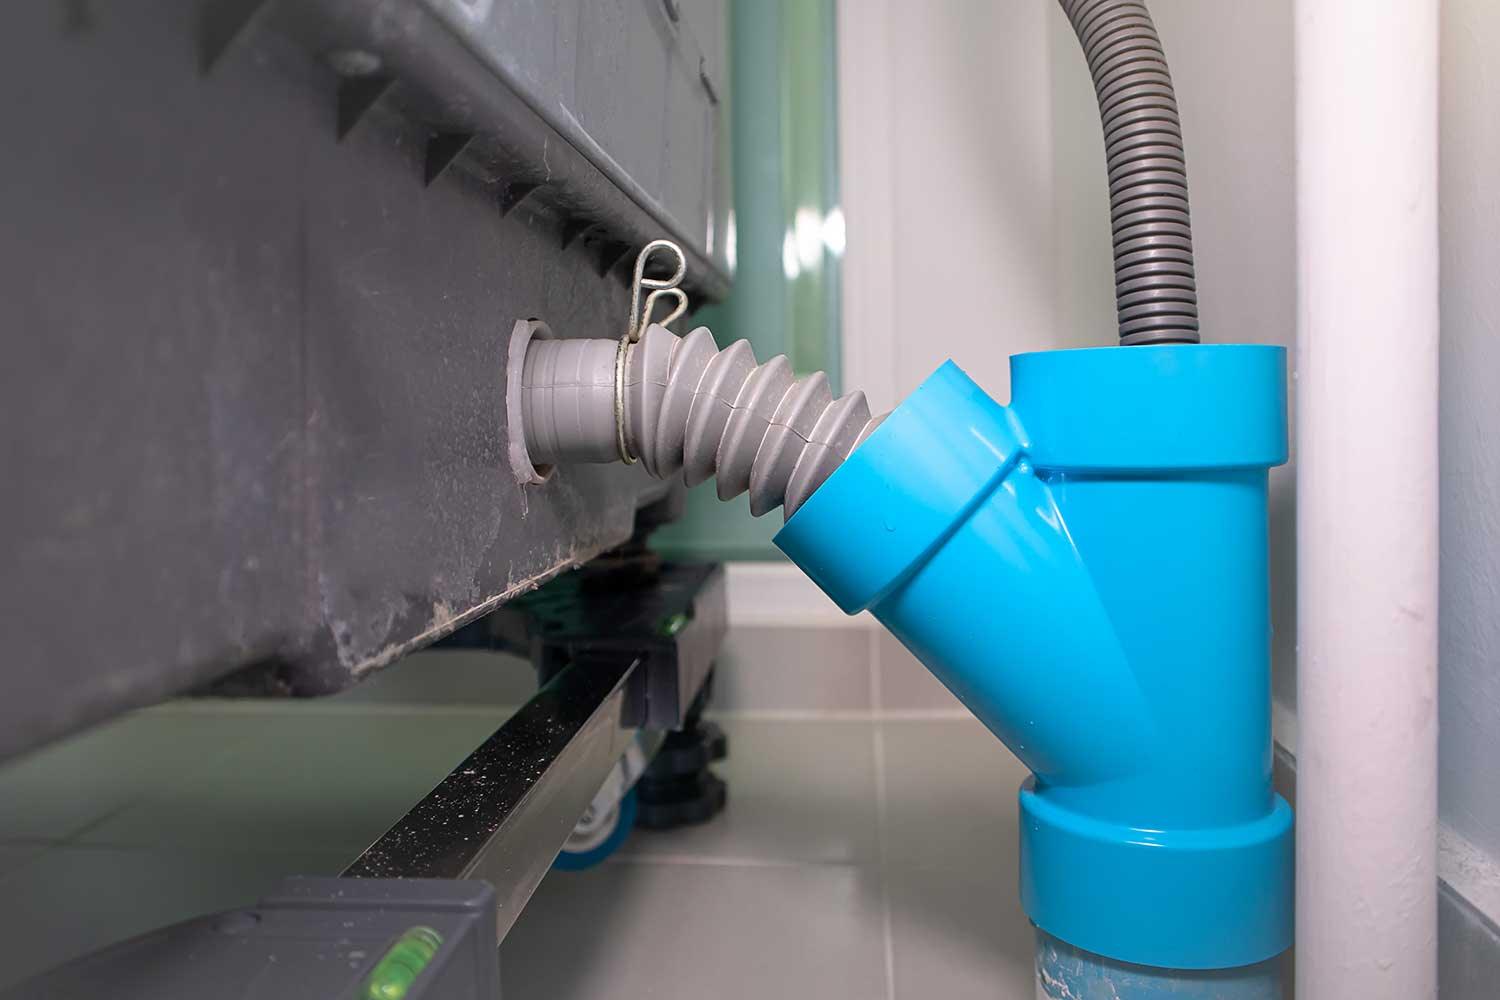 Flexible water drain pipe from washing machine and PVC pipe connector